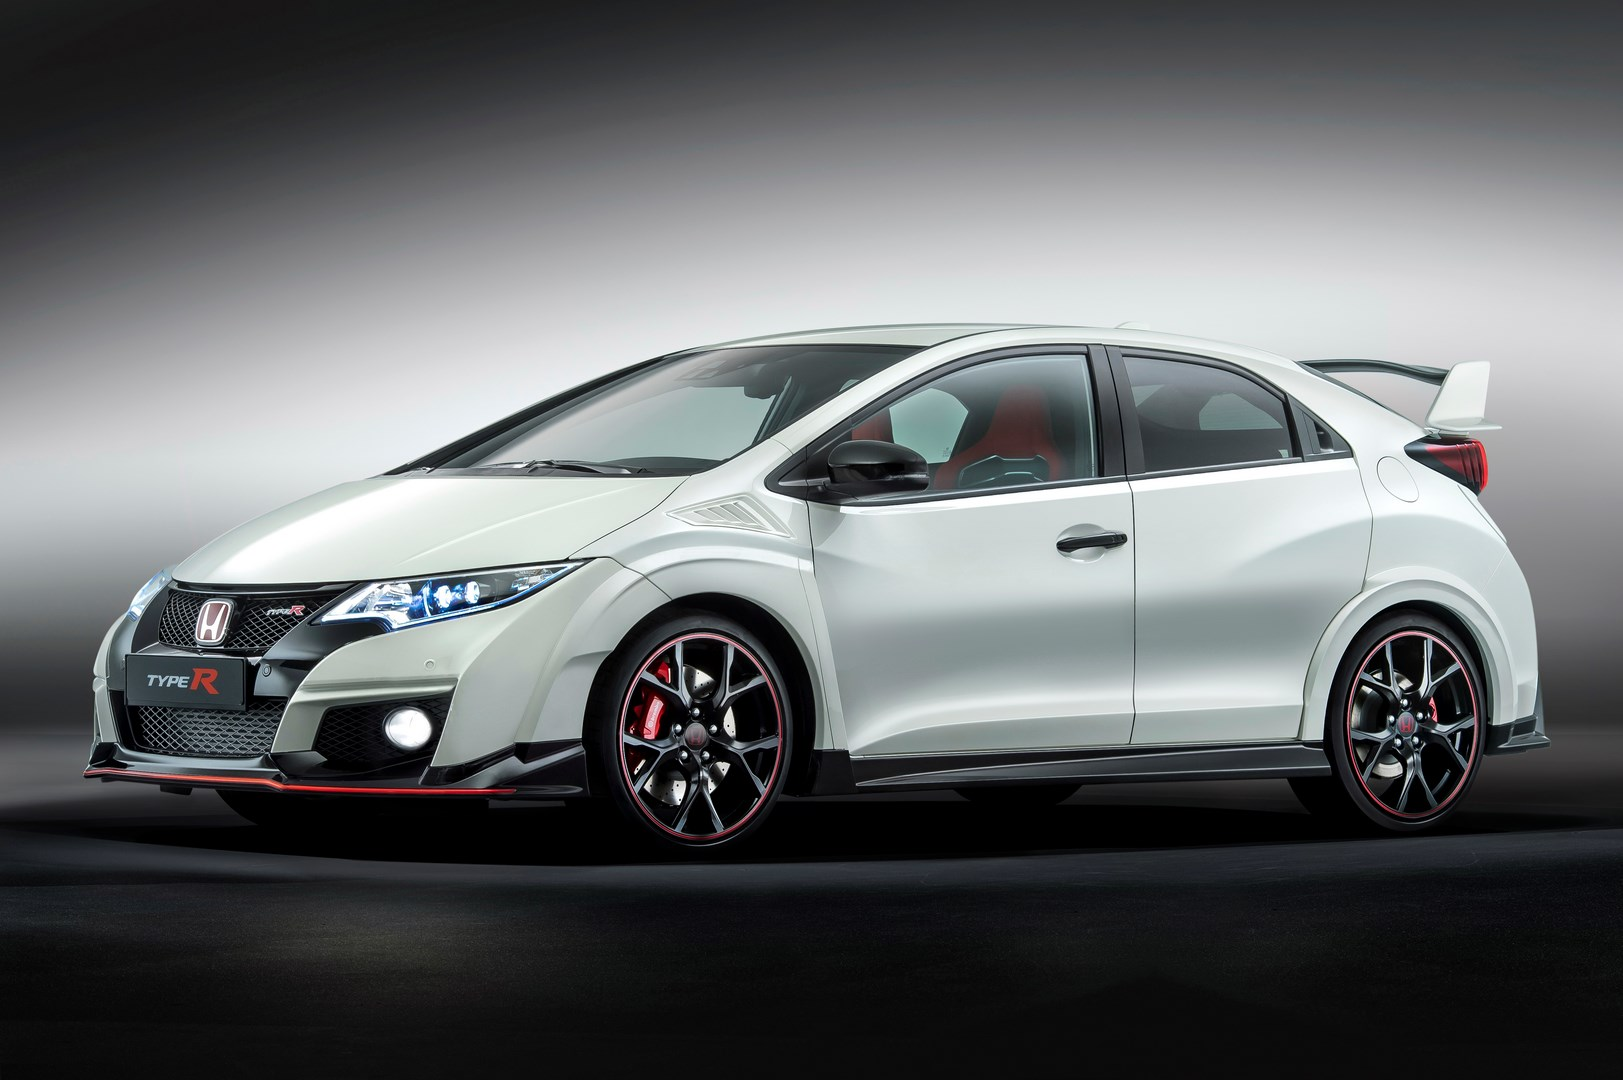 Honda-Civic-Type-R-01 (Copy)